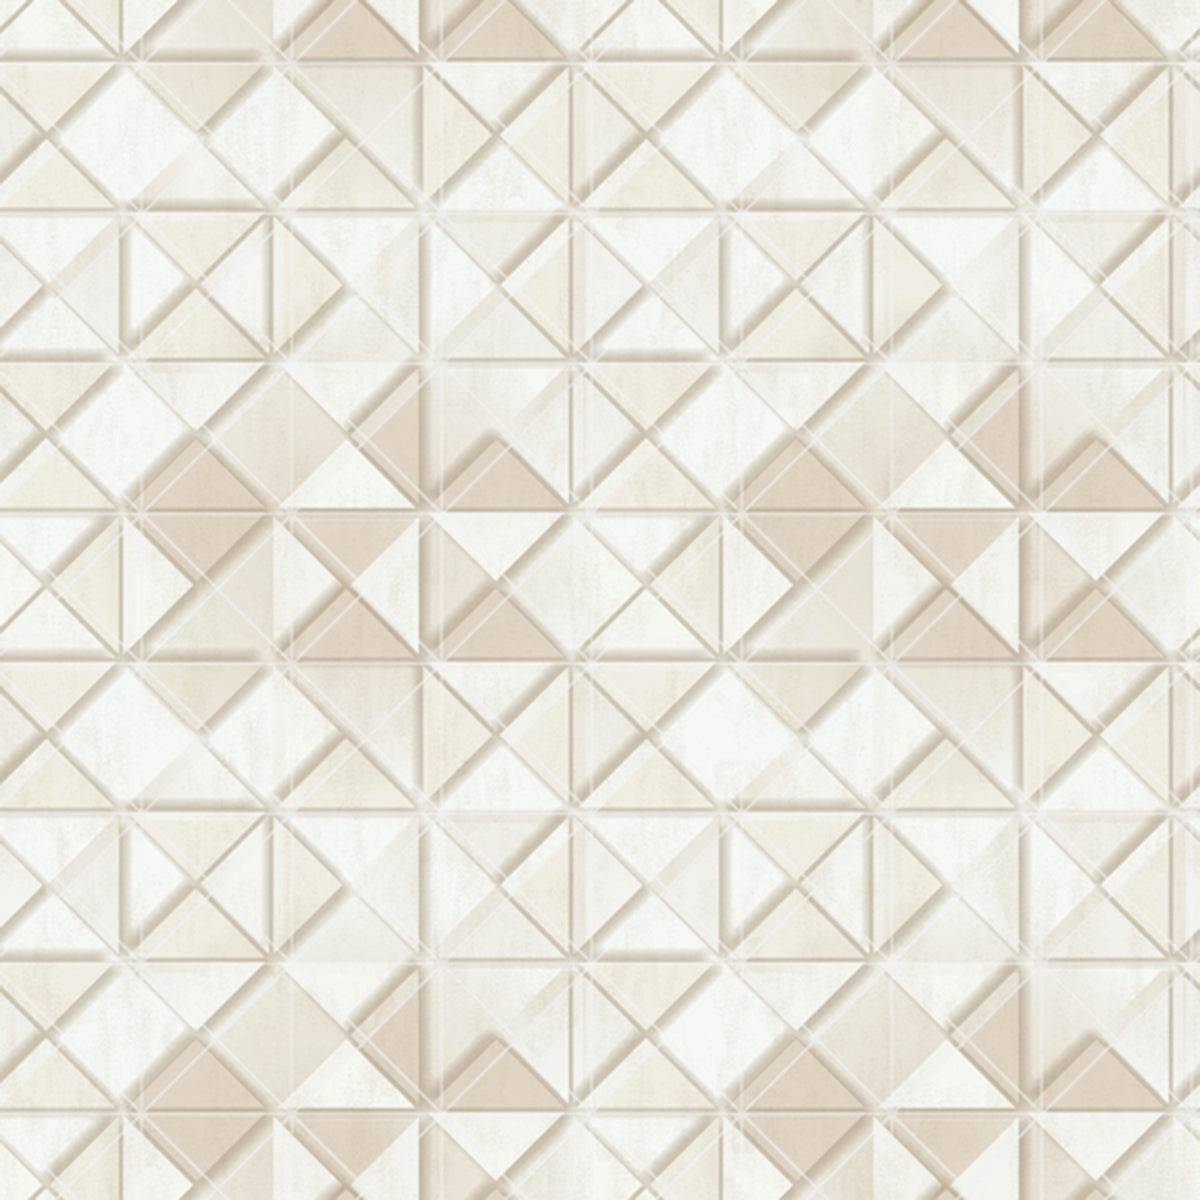 Dream On Mesmerize Wallpaper in Creme/beige